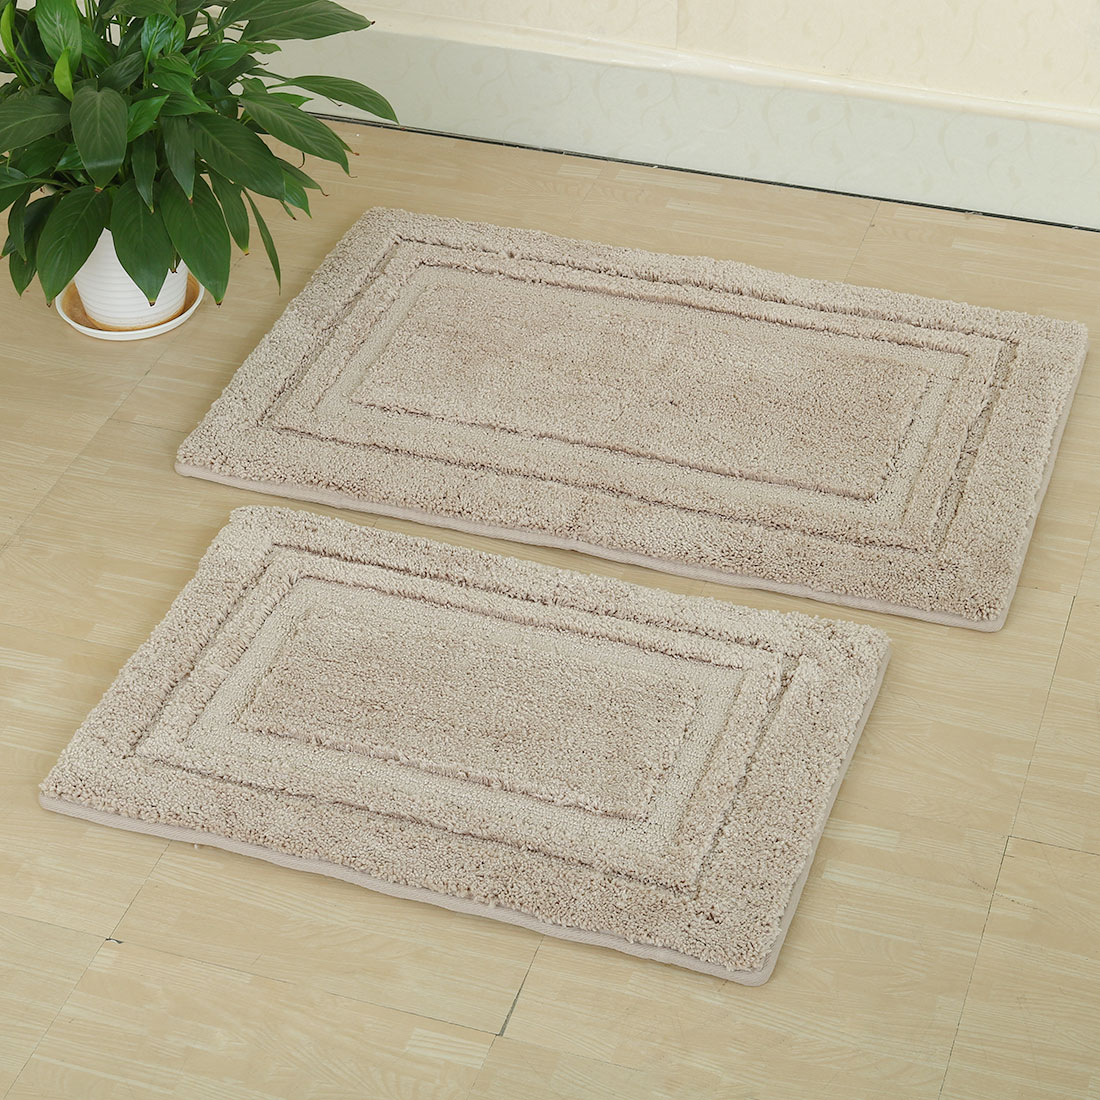 2-Piece Non-slip Bath Rug Set Bath Mat Bathroom Rugs